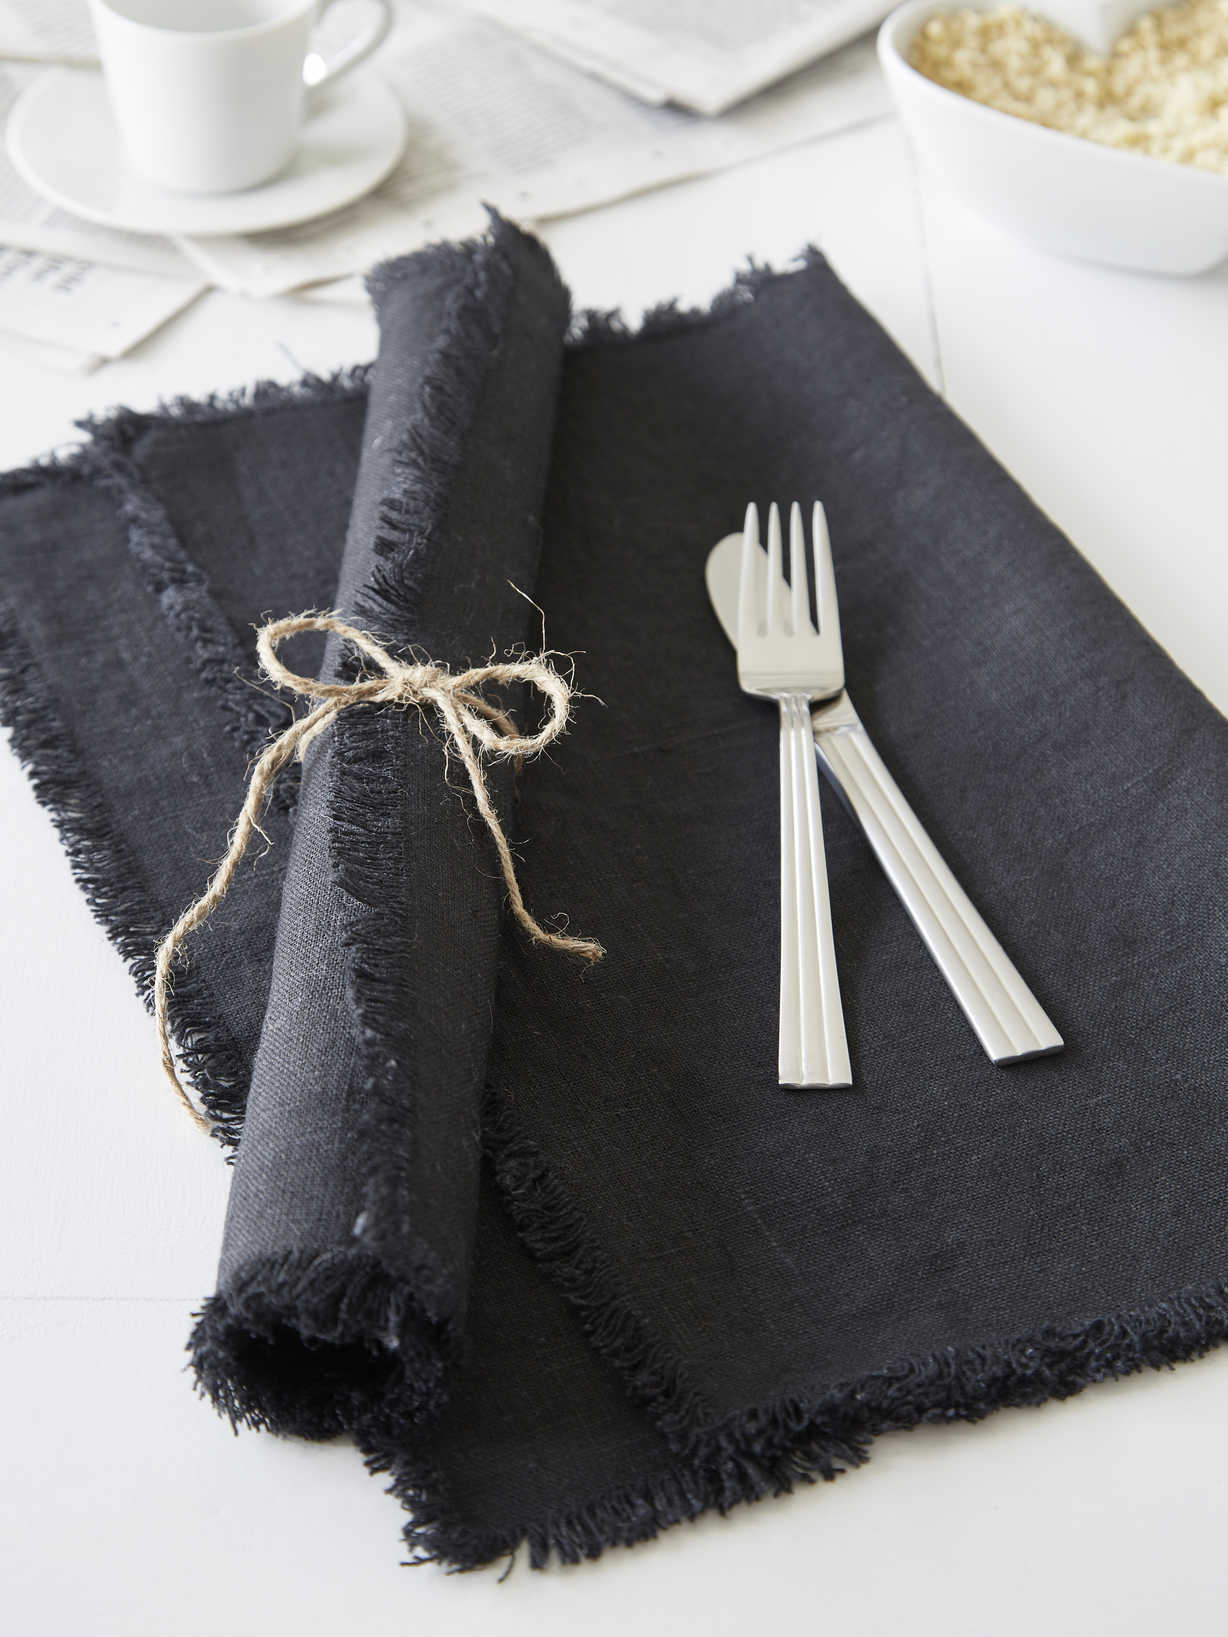 Nordic House Black Frayed Edge Linen Placemats